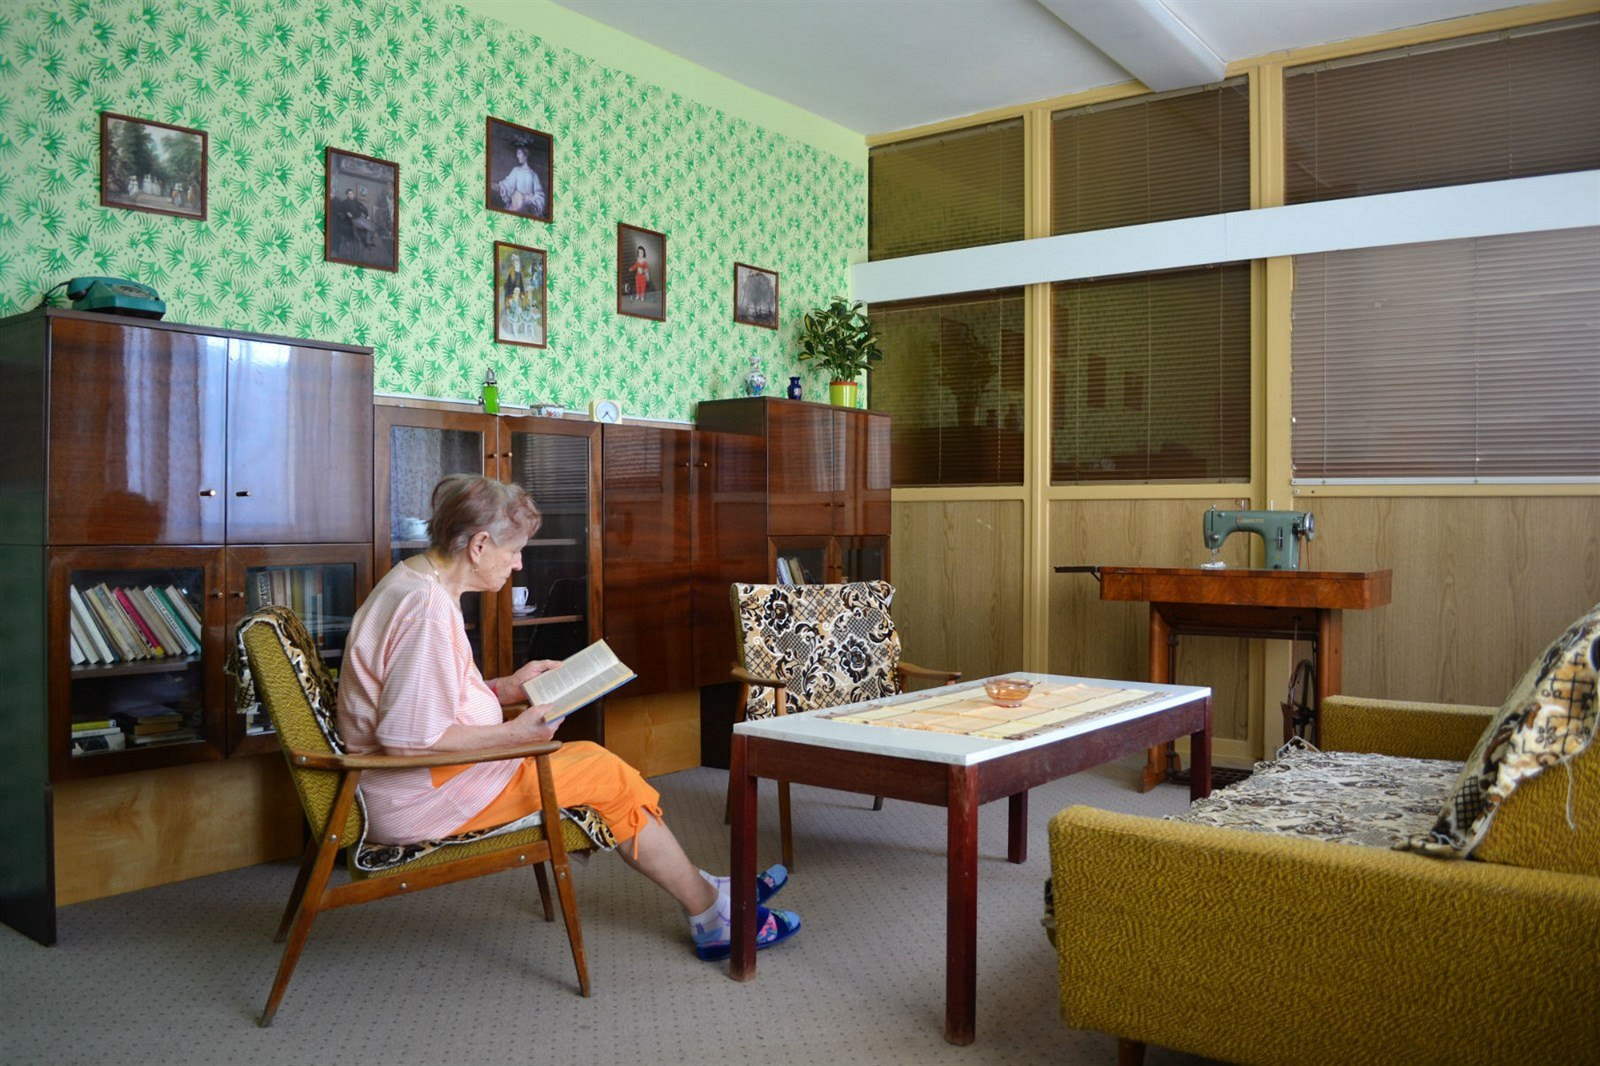 This Czech hospital creates a retro '60s atmosphere for its elderly patients